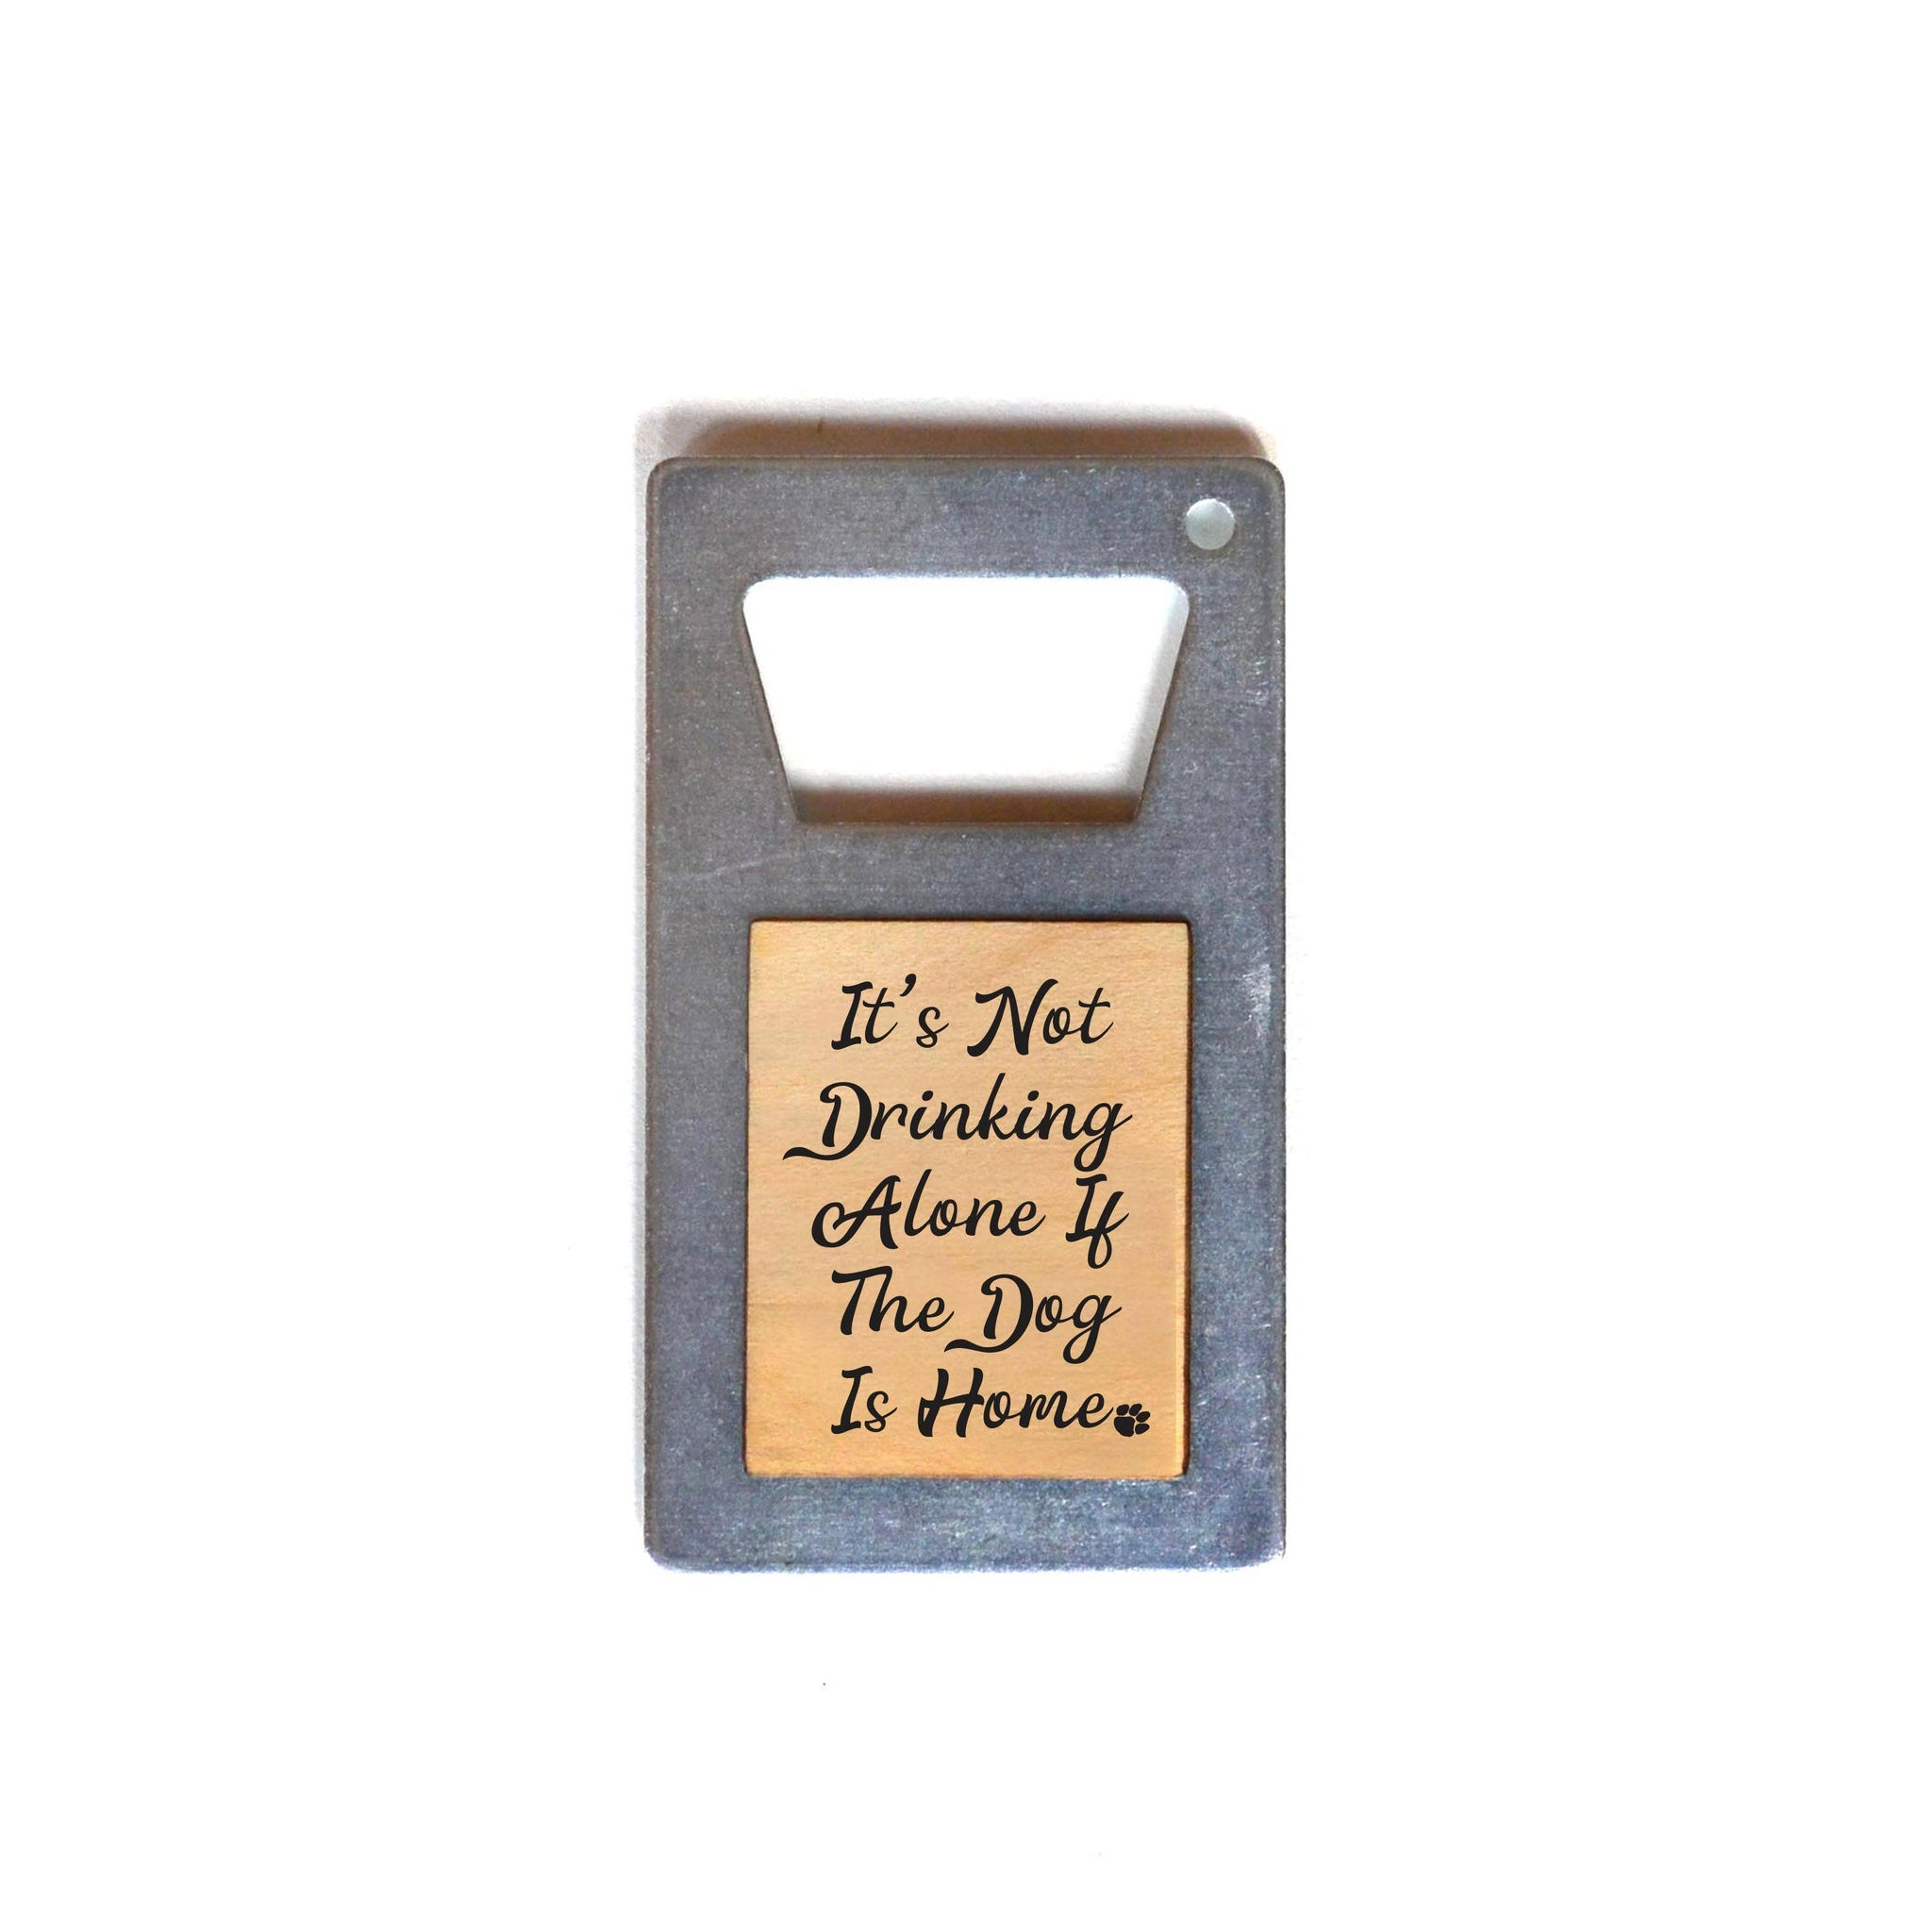 Driftless Studios - It's Not Drinking Alone If The Dog Is Home Bottle Opener